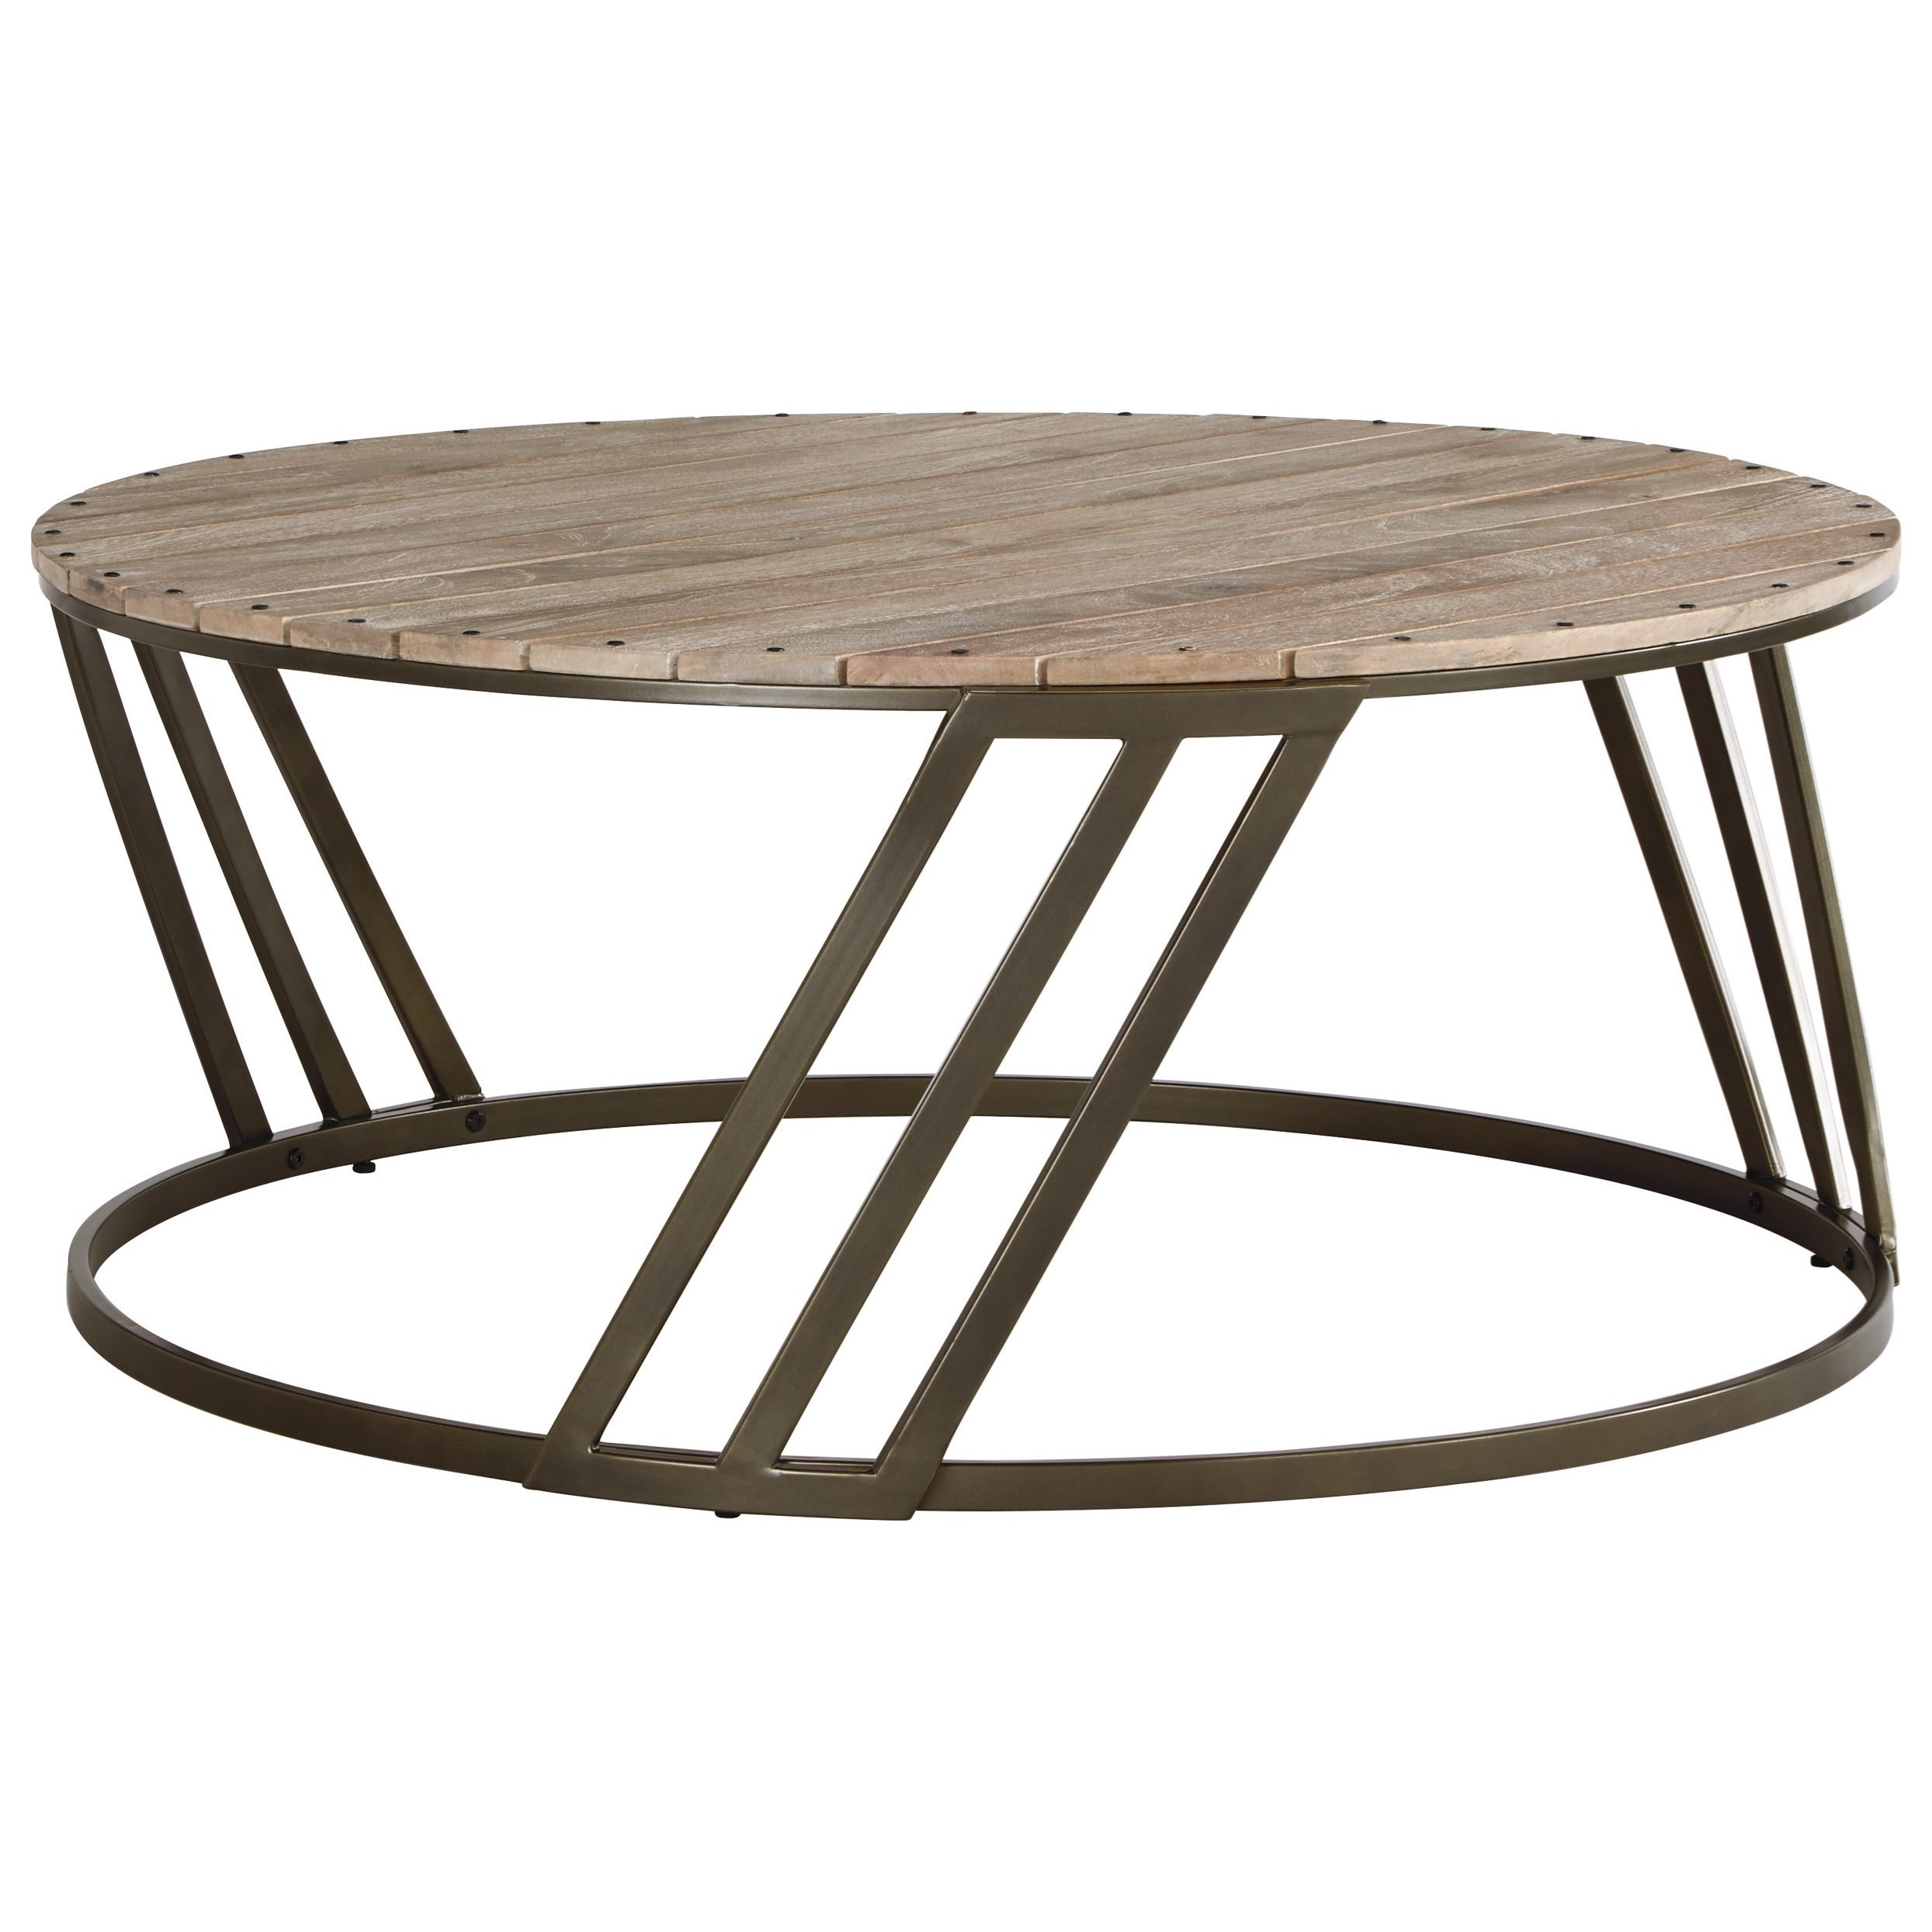 Signature Design by Ashley Fathenzen Round Cocktail Table - Item Number: T536-8